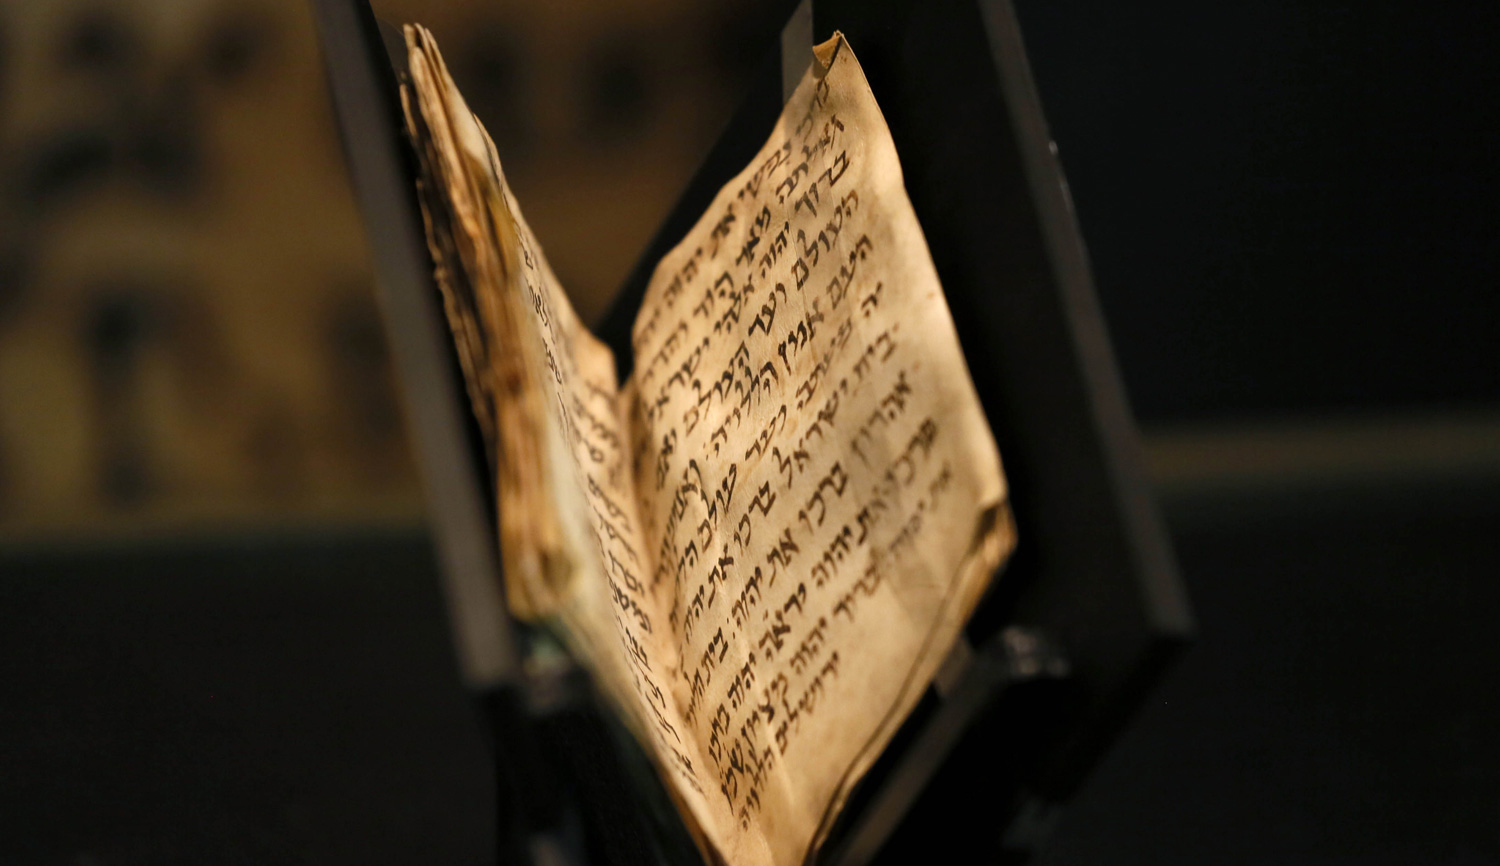 A 1,200-year-old siddur, the oldest known copy in existence, is displayed at the Bible Lands Museum in Jerusalem. GALI TIBBON/AFP/Getty Images.